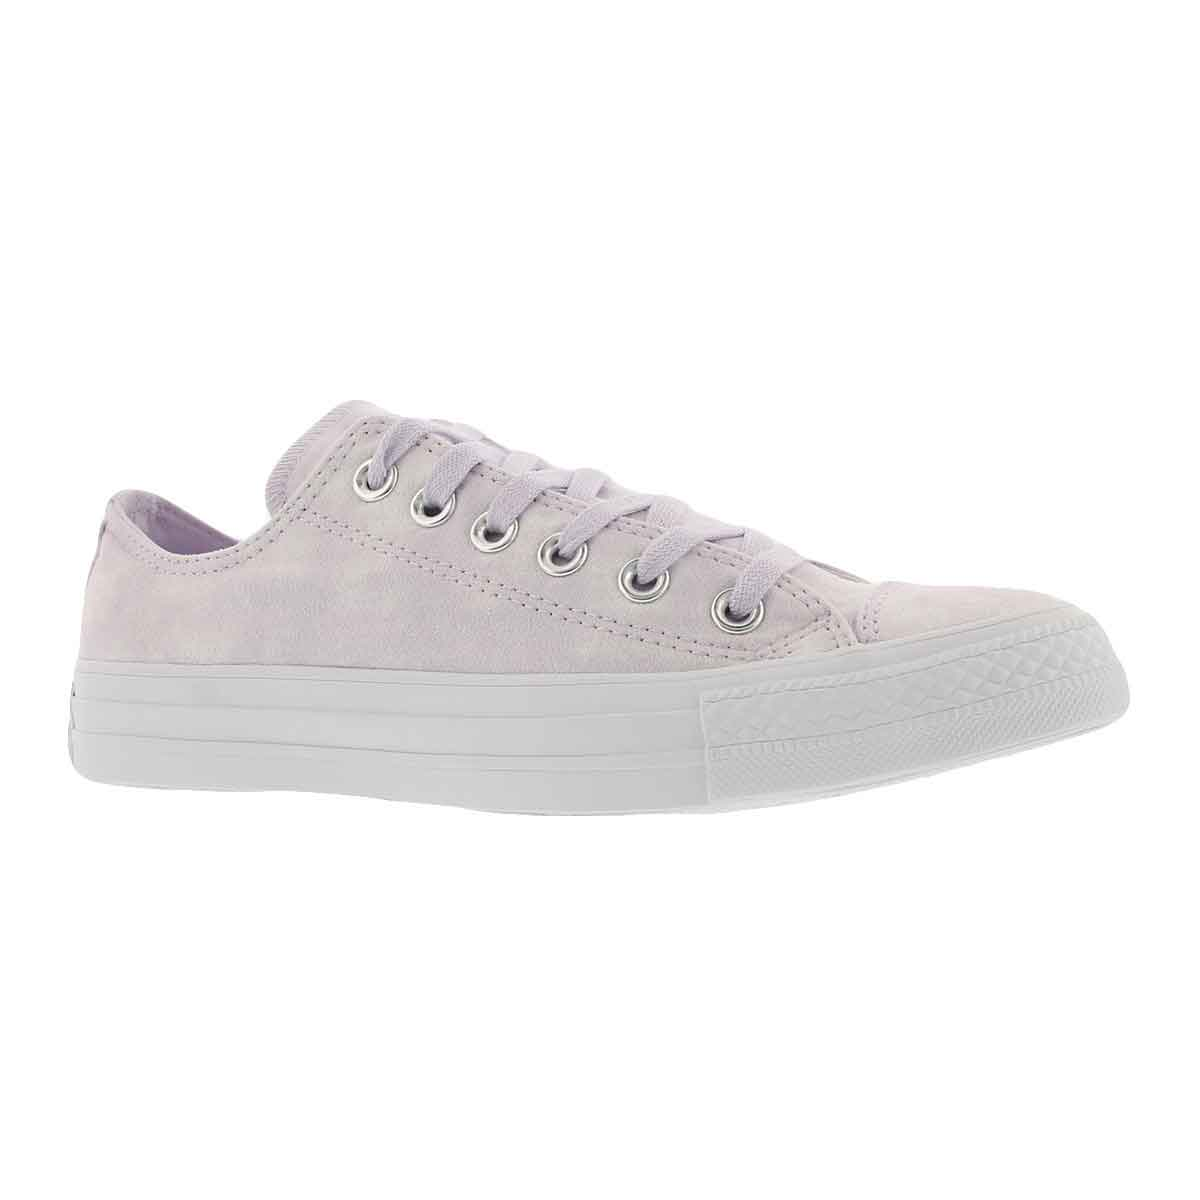 Women's CT ALL STAR PEACHED Wash brly grp sneakers